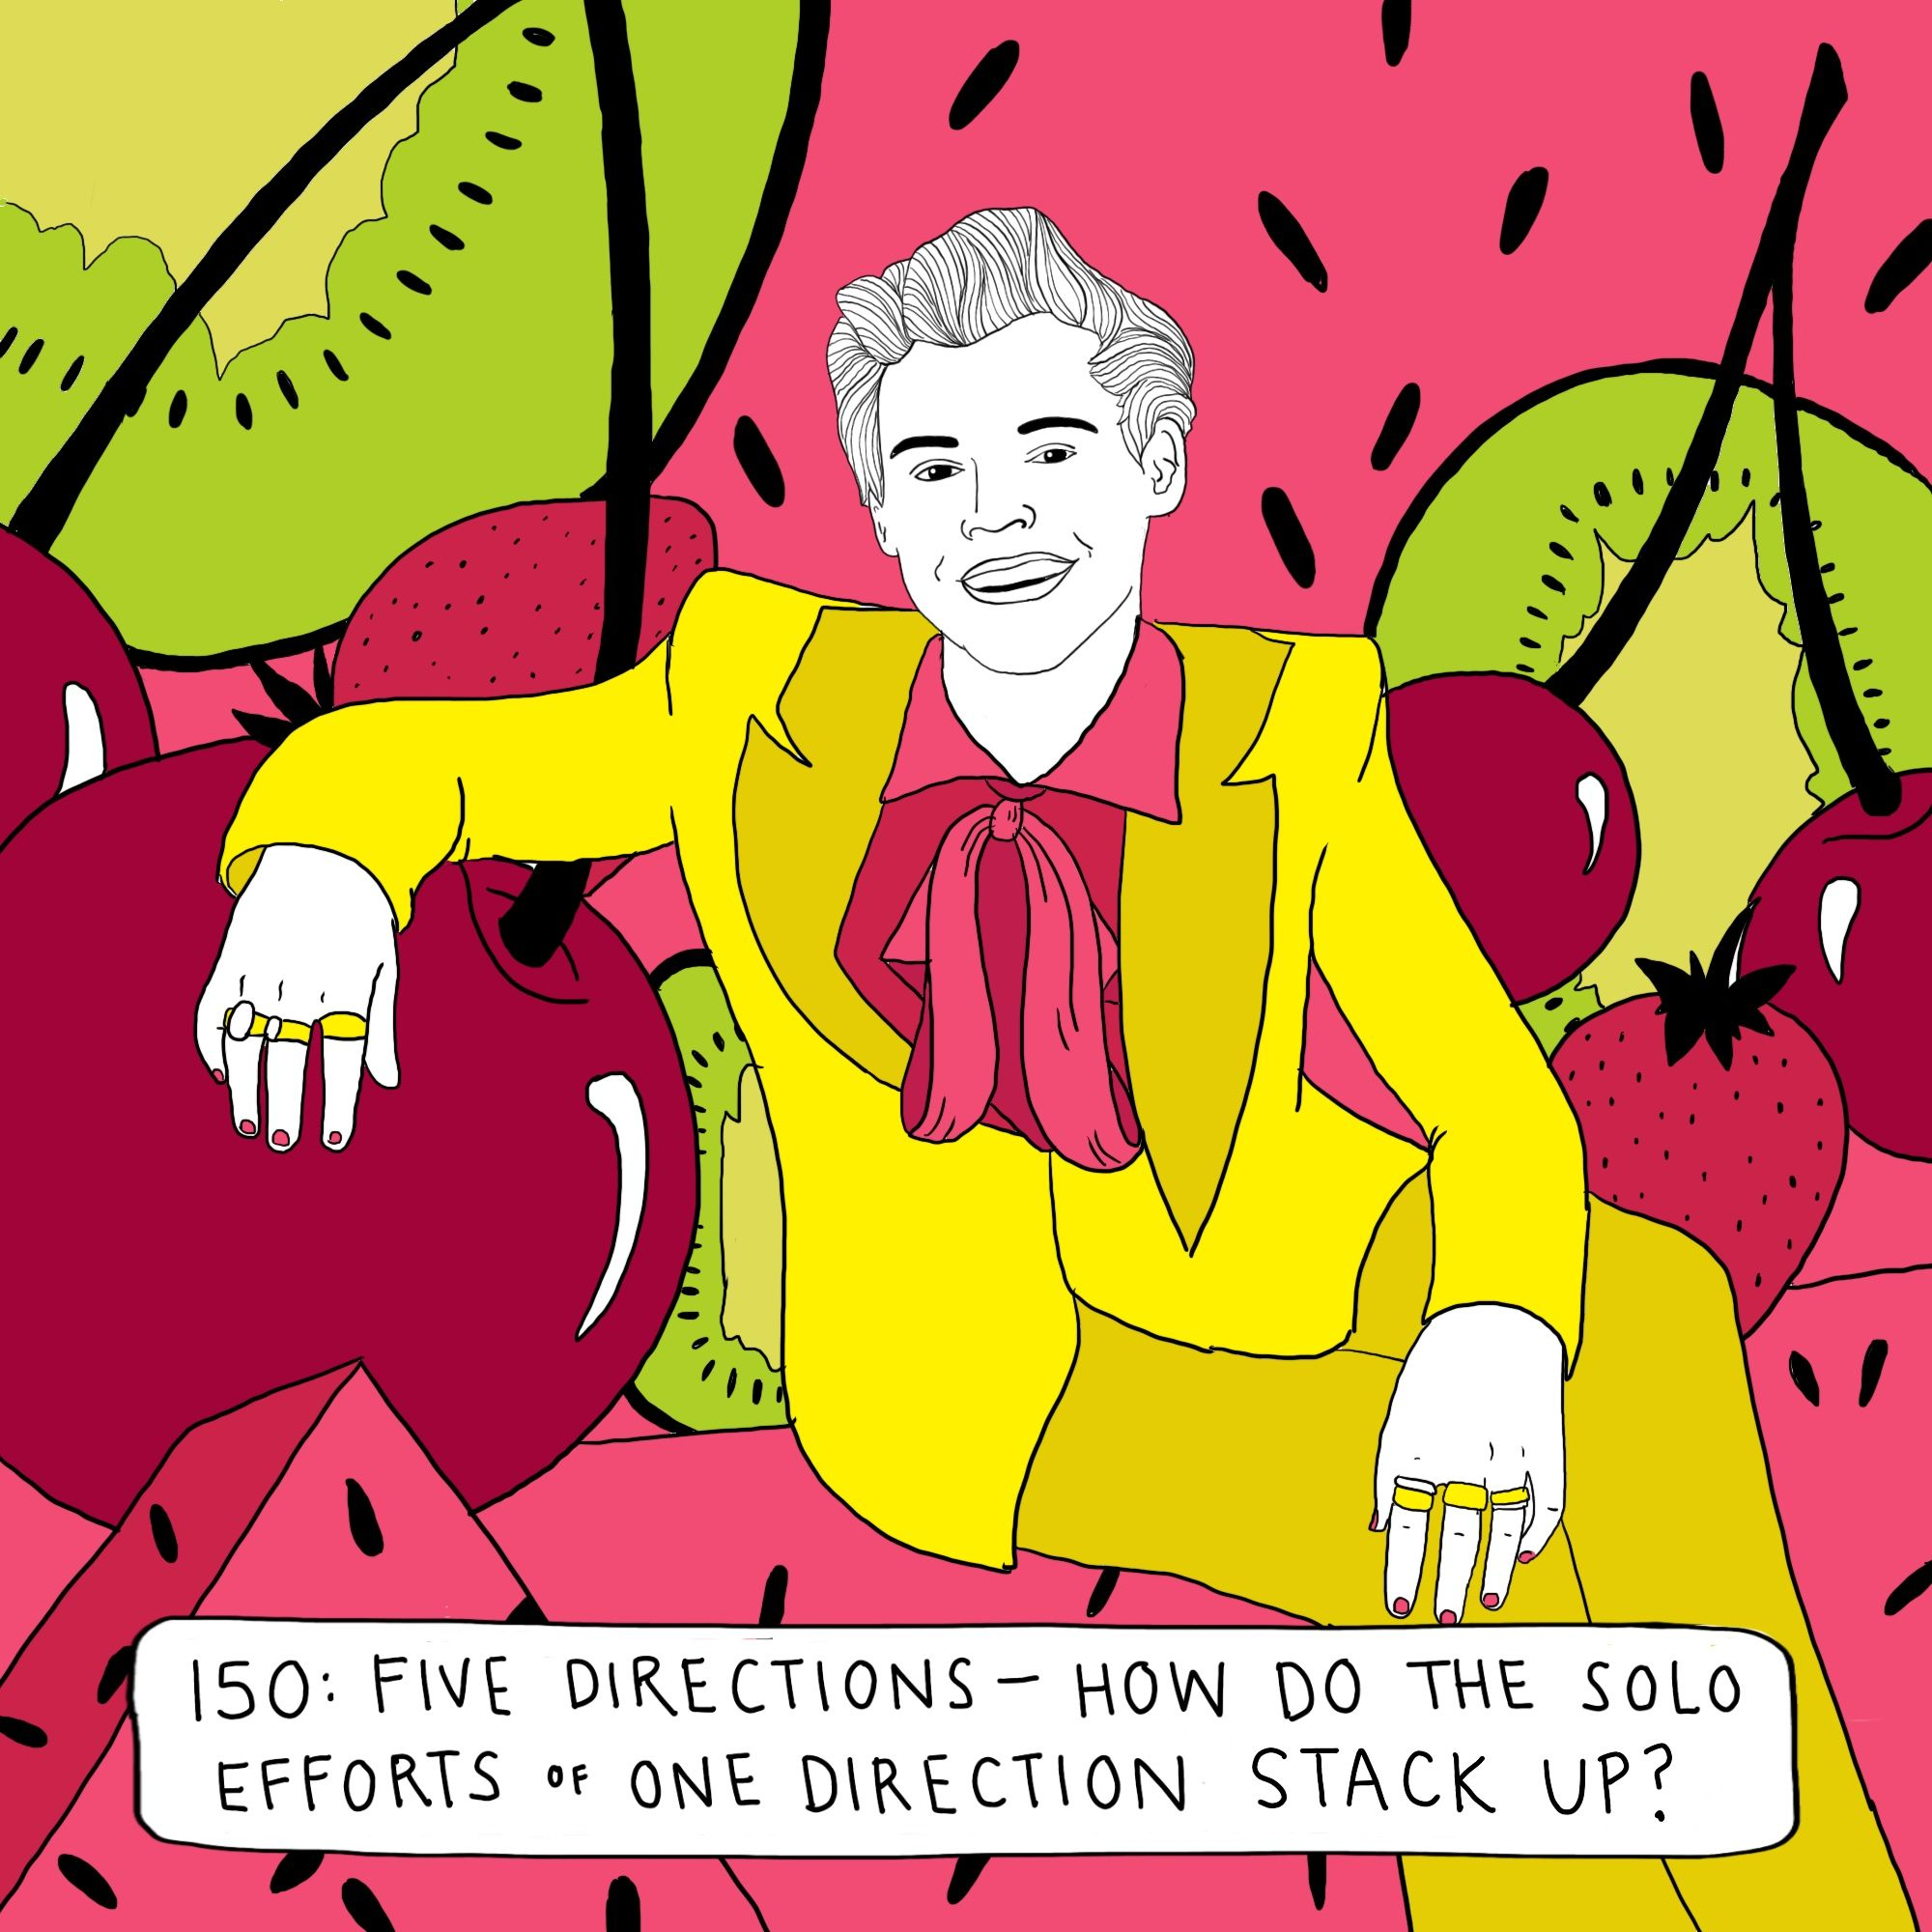 Five Directions: How do the solo efforts of One Direction stack up?